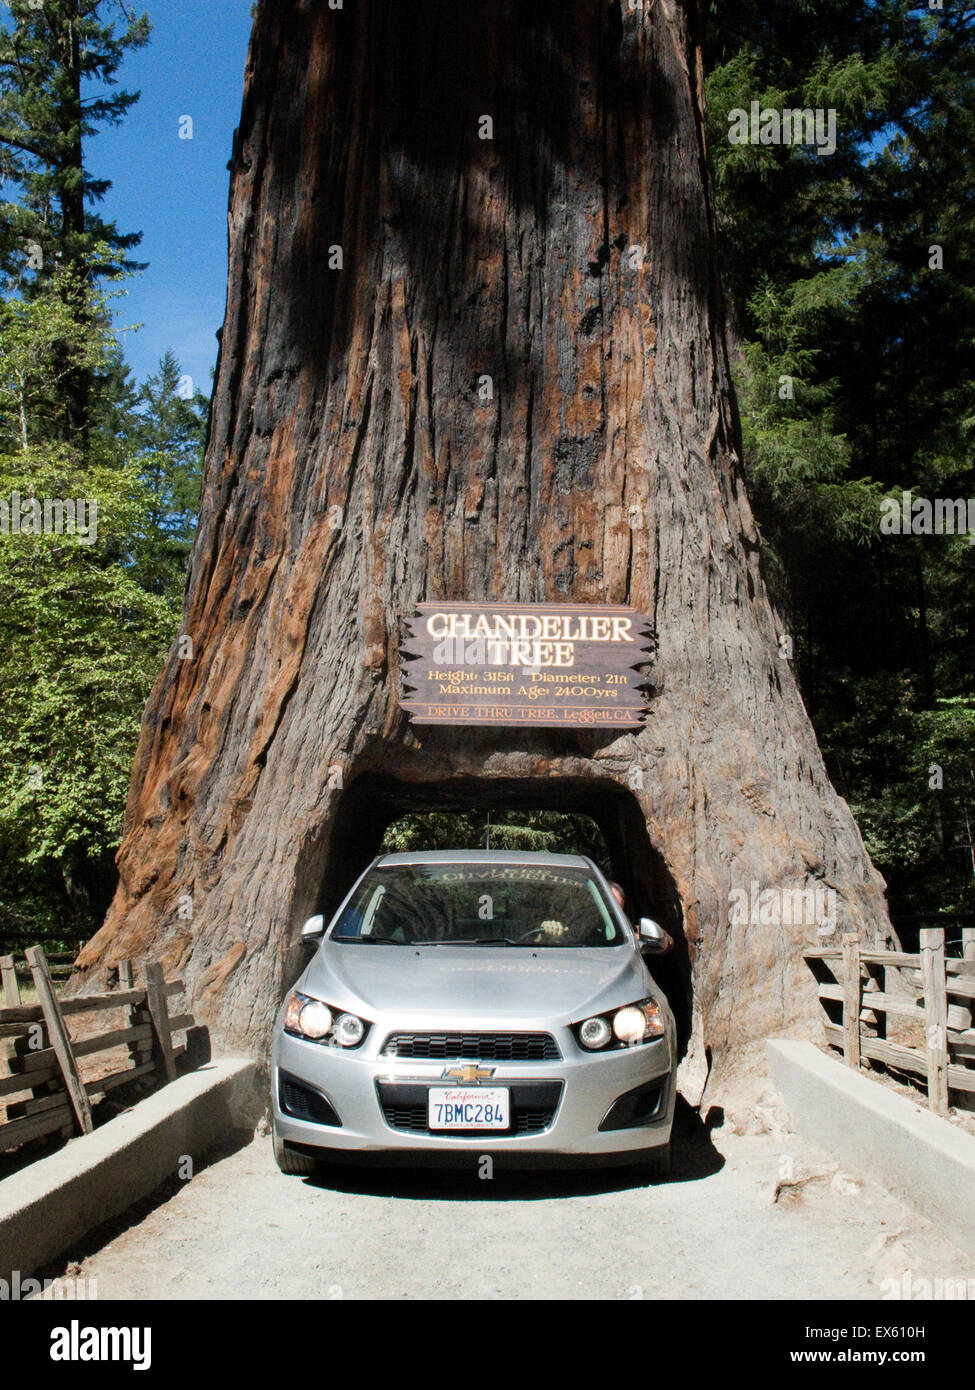 Leggett california chandelier tree in drive thru tree park a chandelier tree in drive thru tree park a coast redwood tree with a hole large enough to drive through arubaitofo Gallery